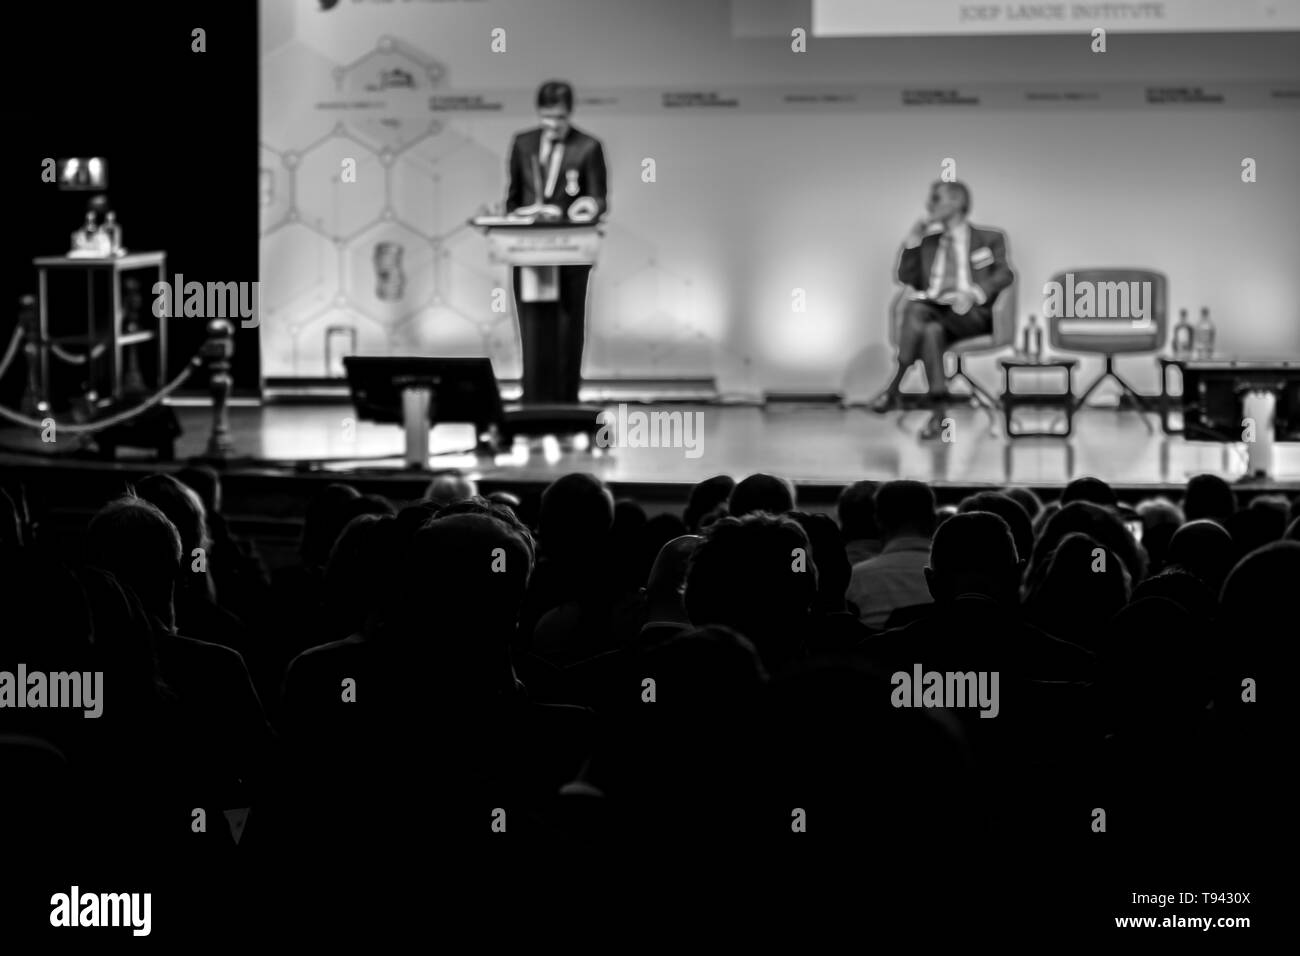 Onno Schellekens Speaking At The FT Future Of Health Conference At The Kit Building Amsterdam The Netherlands 2019 In Black And White - Stock Image